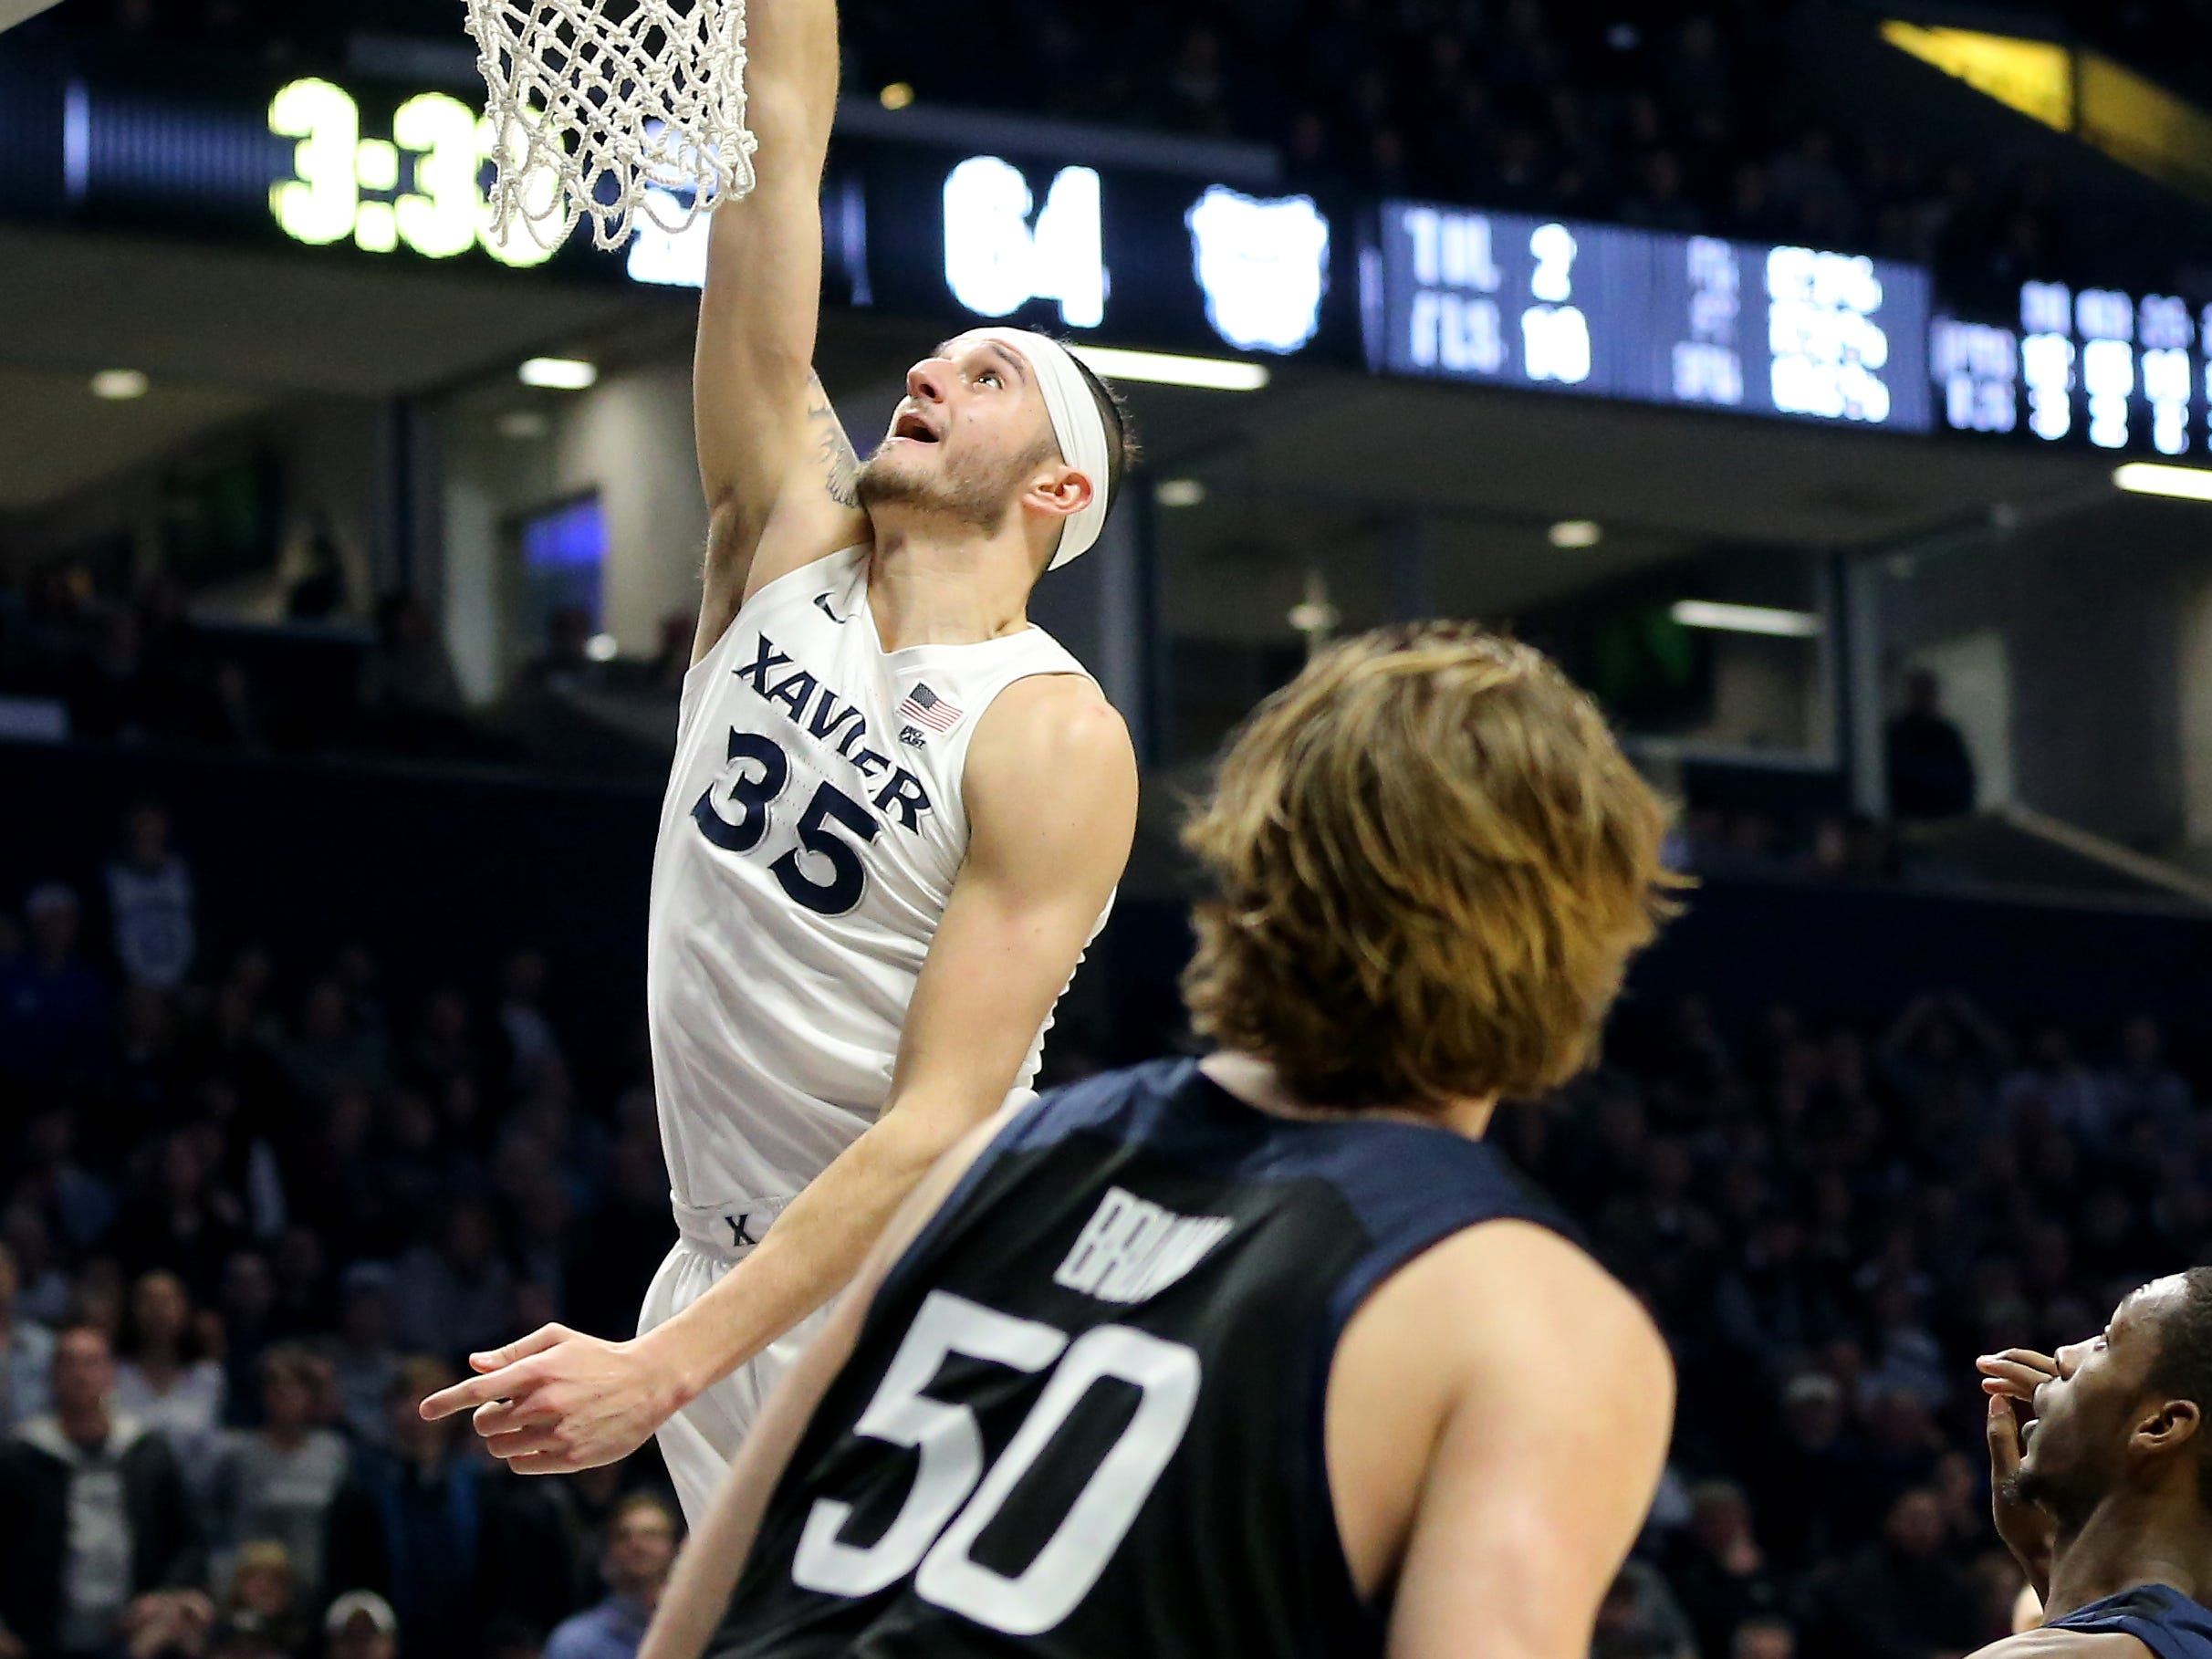 Xavier Musketeers forward Zach Hankins (35) scores a put-back basket in the second half of an NCAA college basketball game against the Butler Bulldogs, Sunday, Jan. 13, 2019, at Cintas Center in Cincinnati. Xavier Musketeers won 70-69.